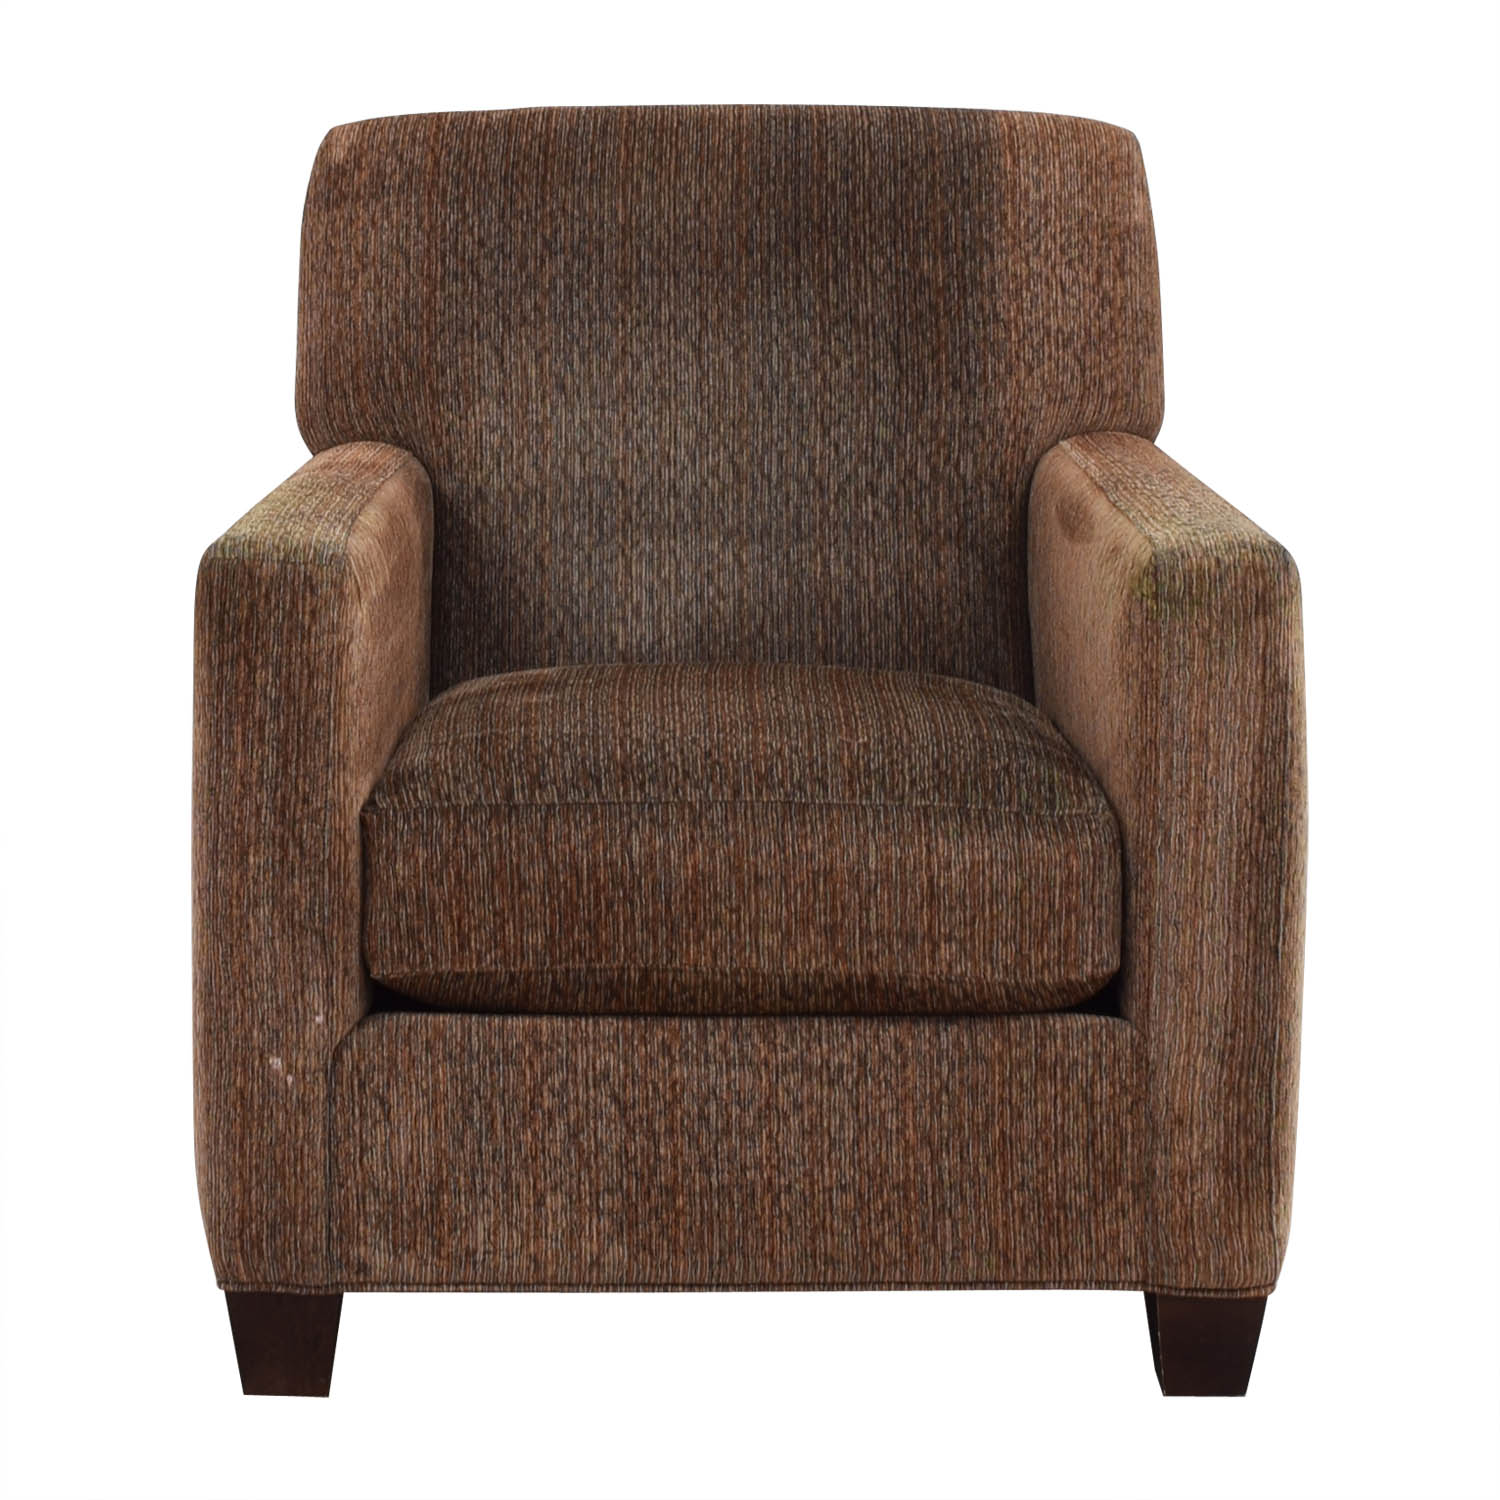 Superb 80 Off Crate Barrel Crate Barrel Accent Chair Chairs Uwap Interior Chair Design Uwaporg